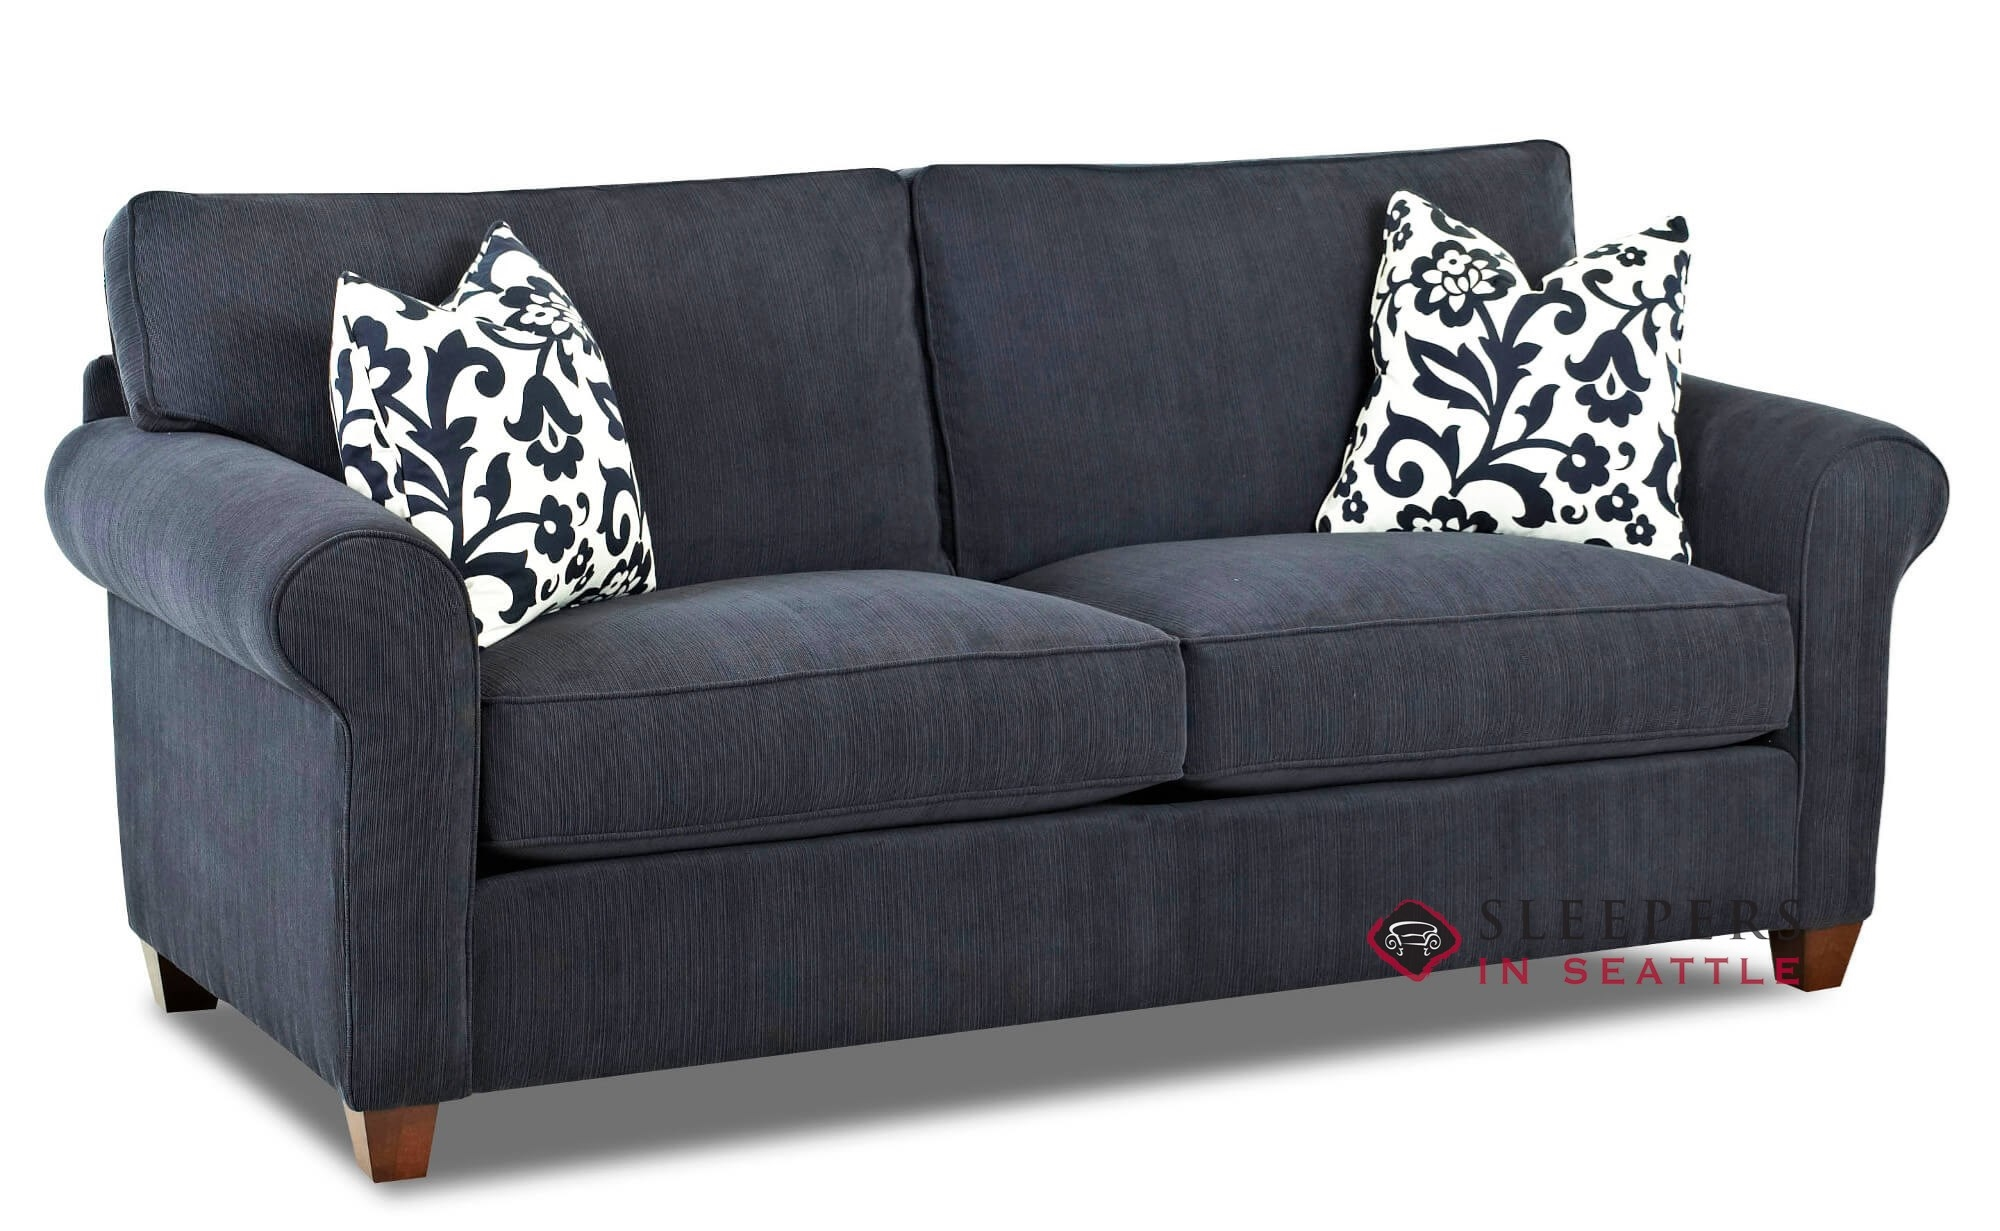 bed and sofa warehouse leeds billige sofas online kaufen customize personalize by savvy full fabric